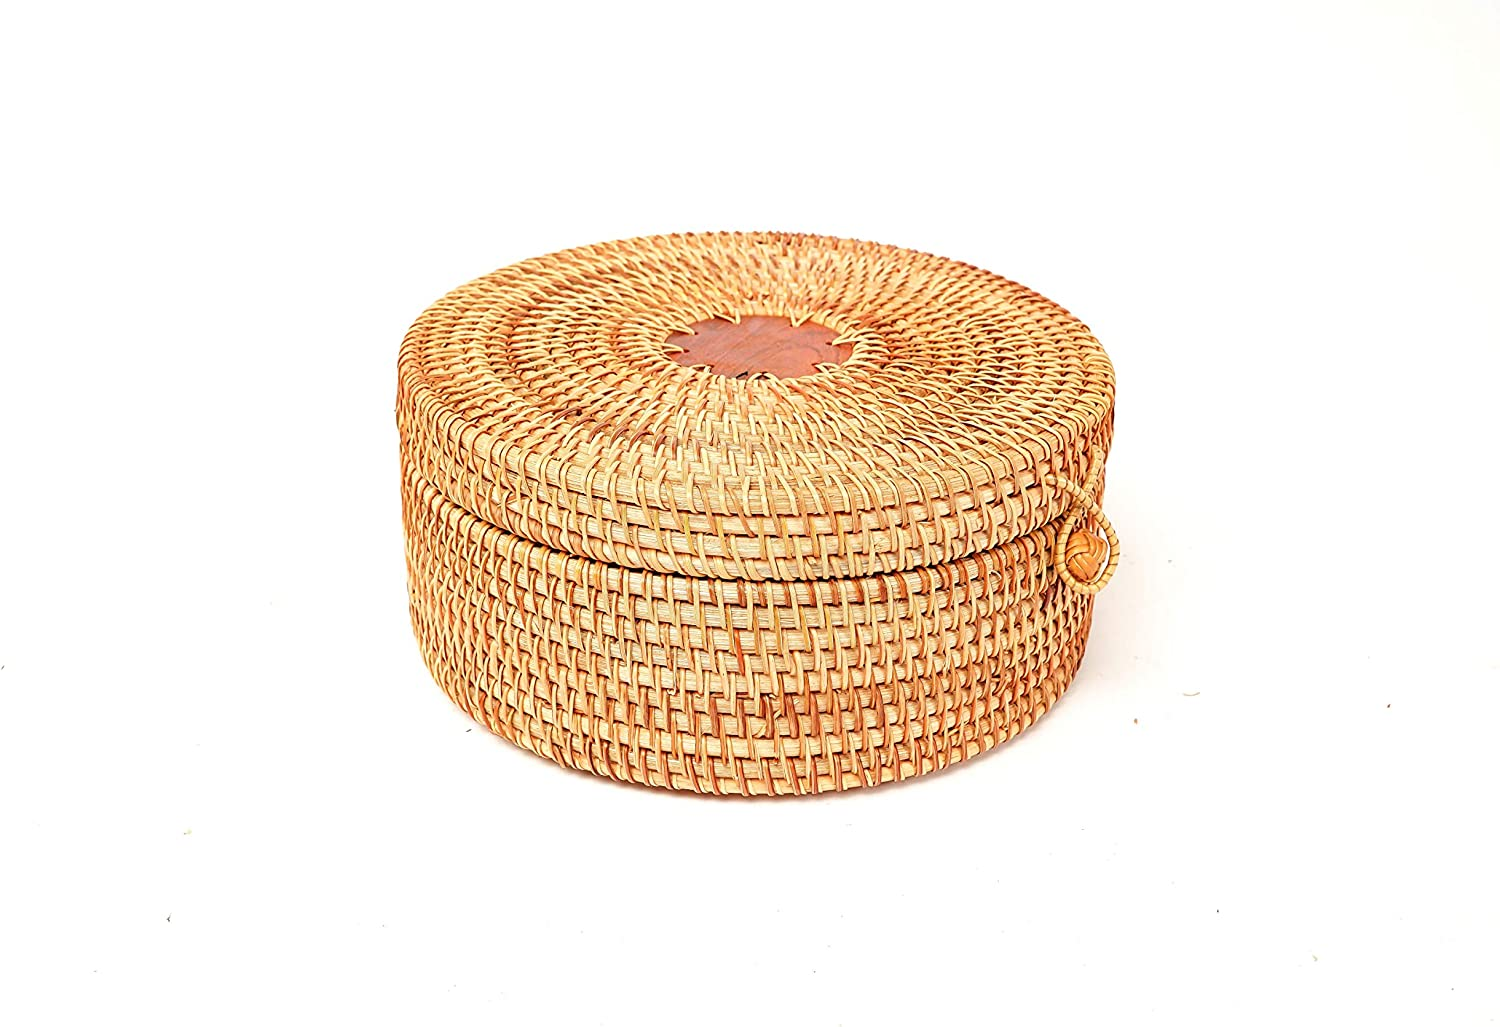 Round Hand-woven Rattan Storage Box with Straps. Natural Rattan Storage Baskets. Multipurpose Round Rattan Bowls. Food, Fruit, Drinks, Makeup organizer storage box with lid for décor